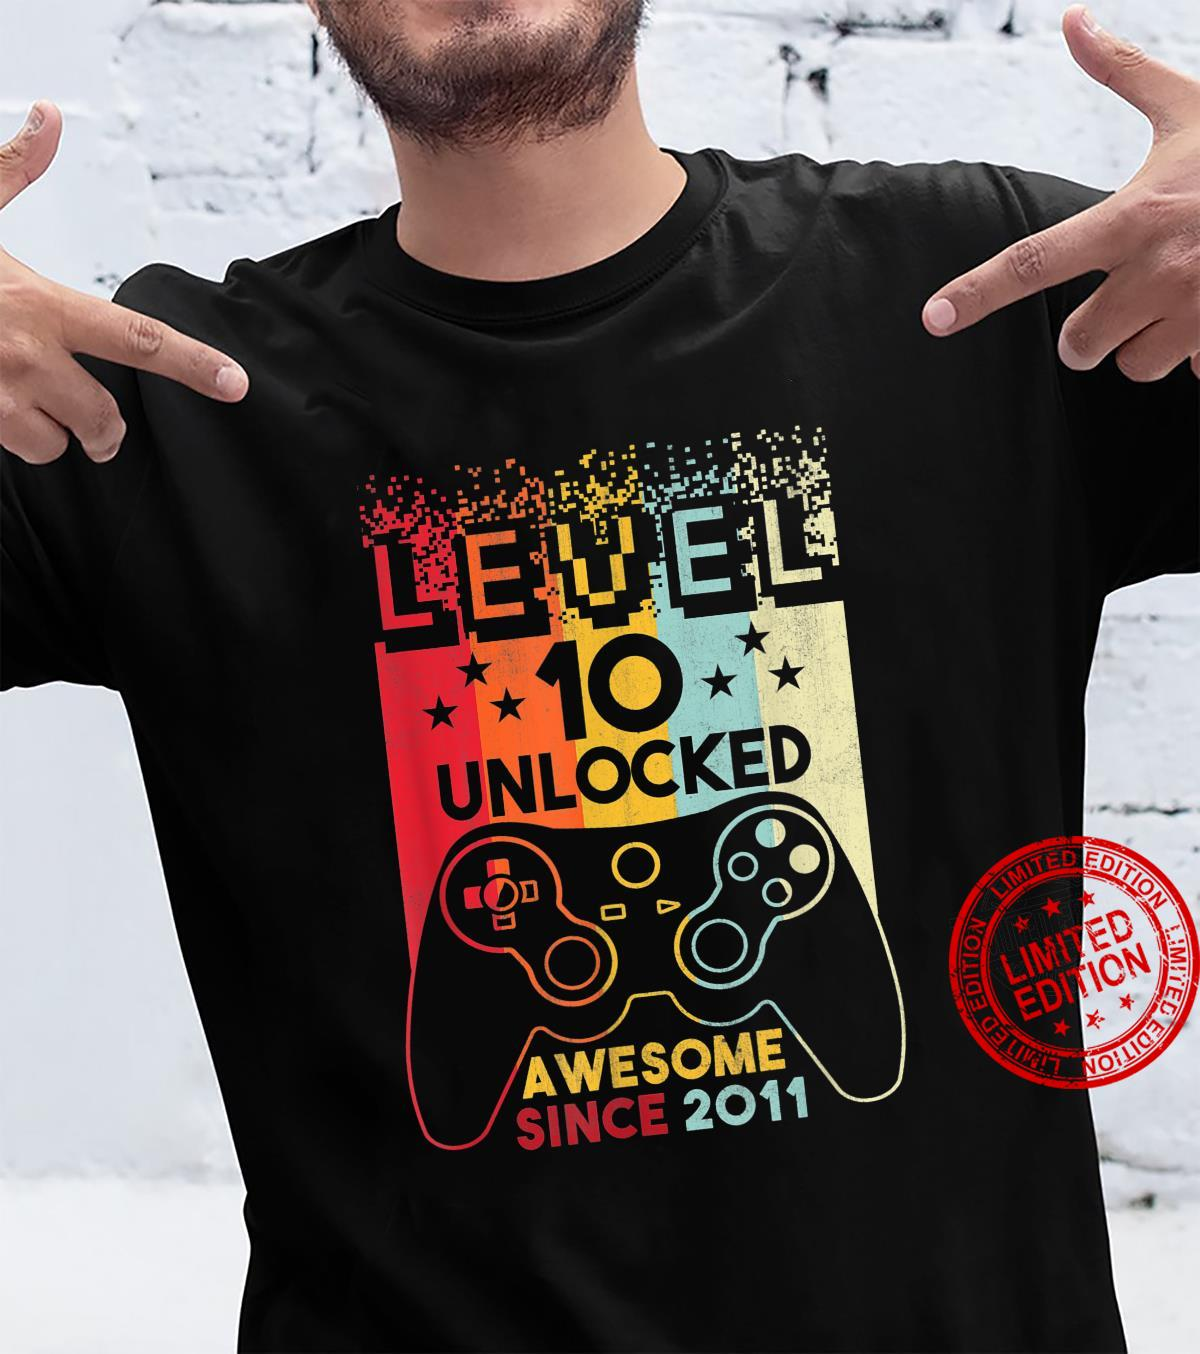 10 Years Old Boys Video Gamer Level 10 Unlocked Awesome 2011 Shirt